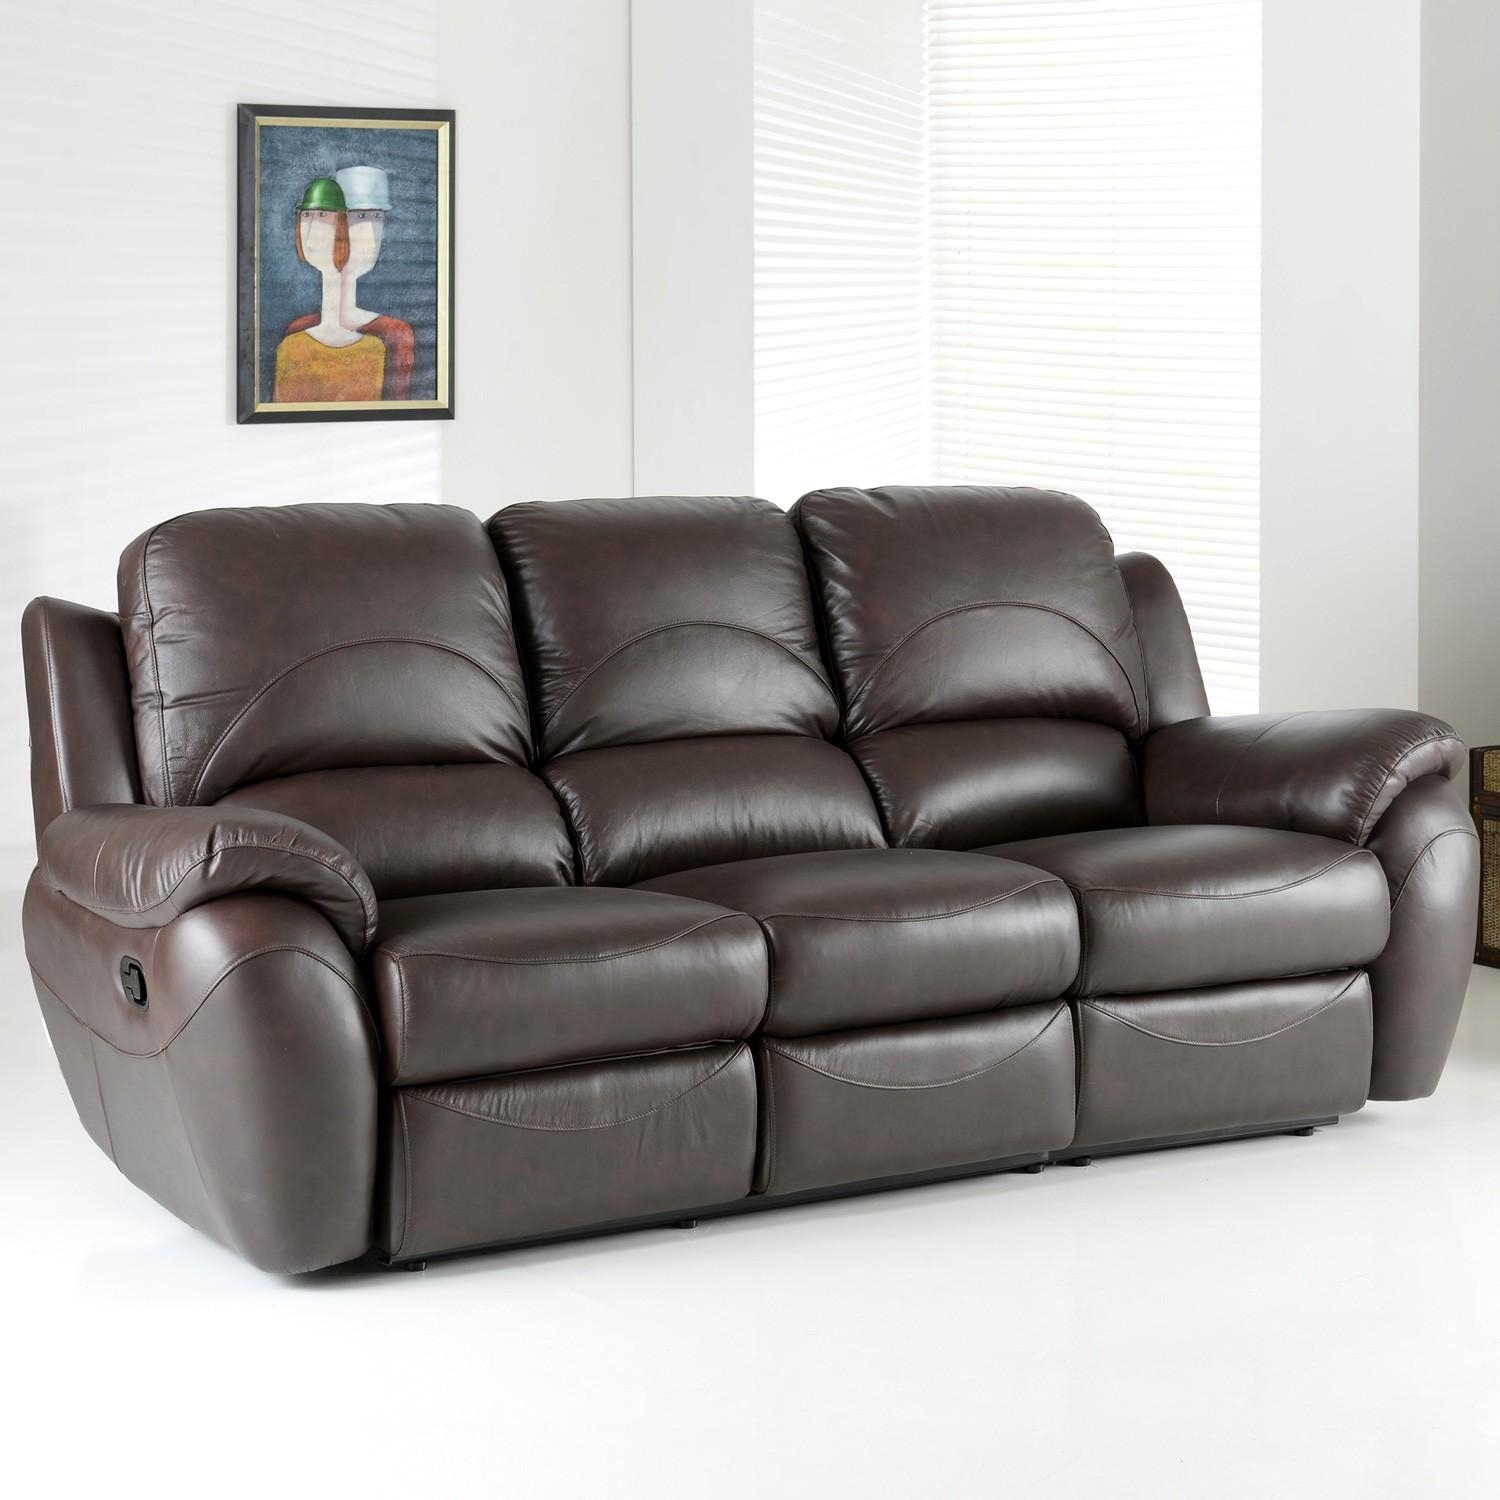 Lazy Boy Leather Sofa Recliners – Leather Sectional Sofa Throughout Lazy Boy Leather Sectional (View 18 of 20)